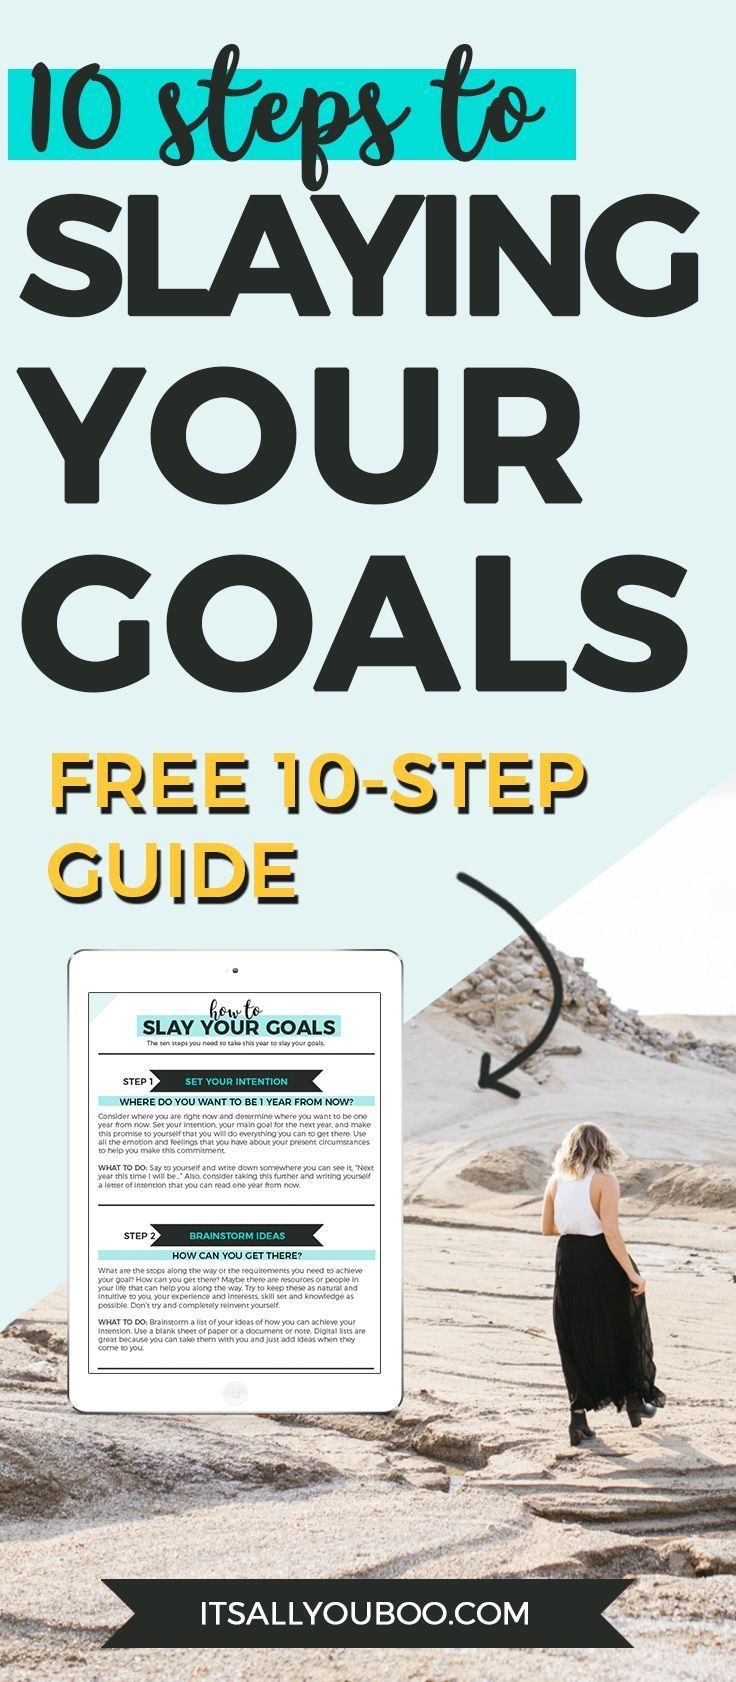 Ready to have your most epic year yet? Stop just setting goals and start slaying them! Get your free 10-step guide.